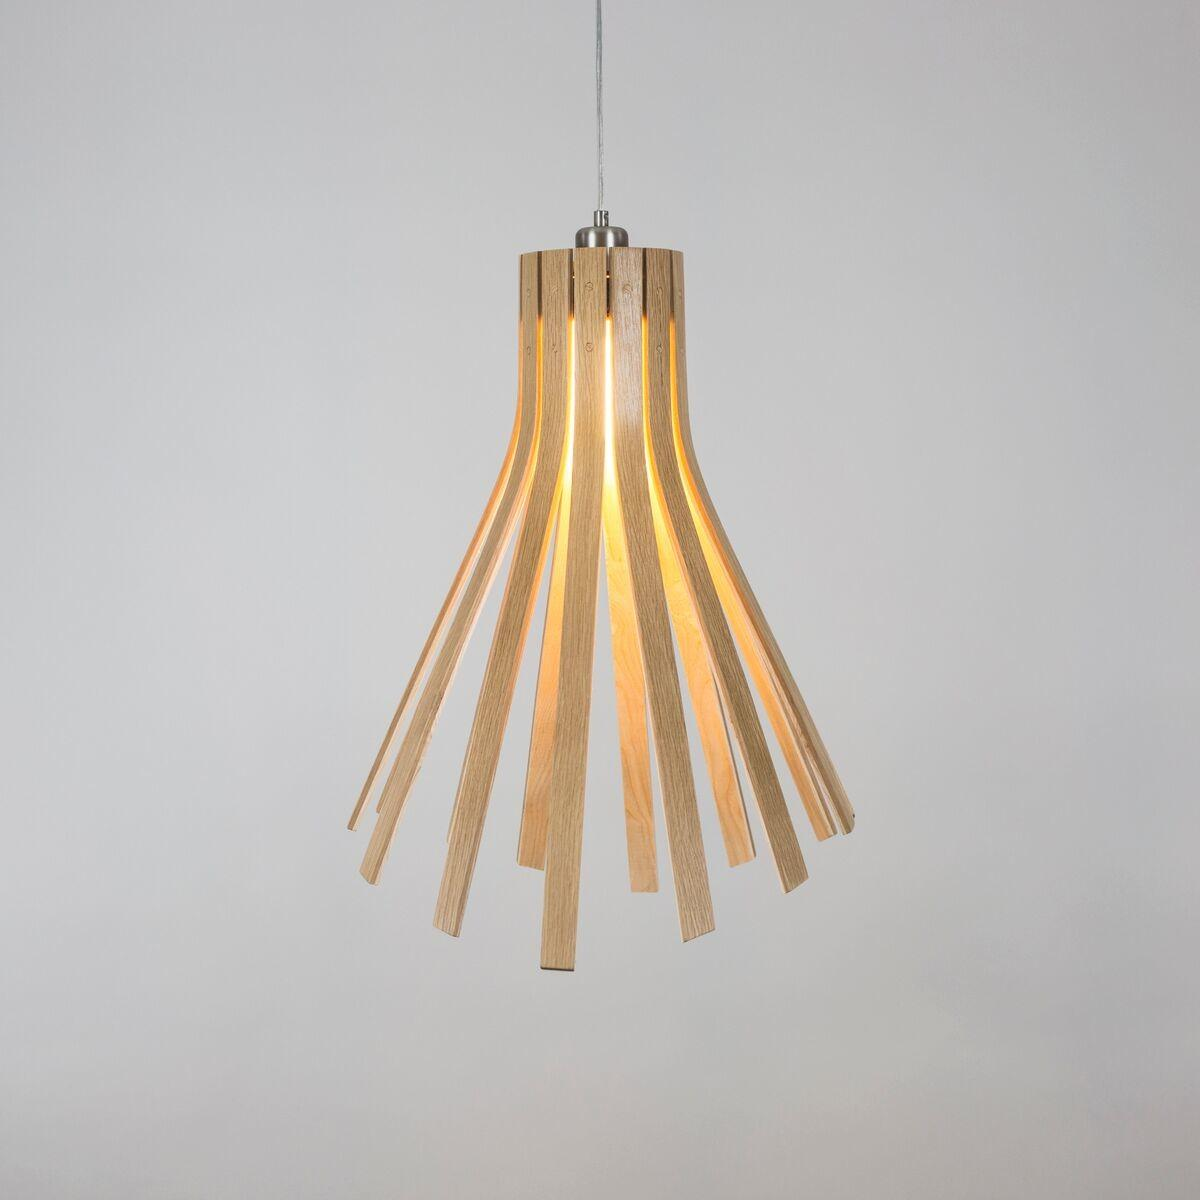 Simple Sculptural Wooden Pendant Lights